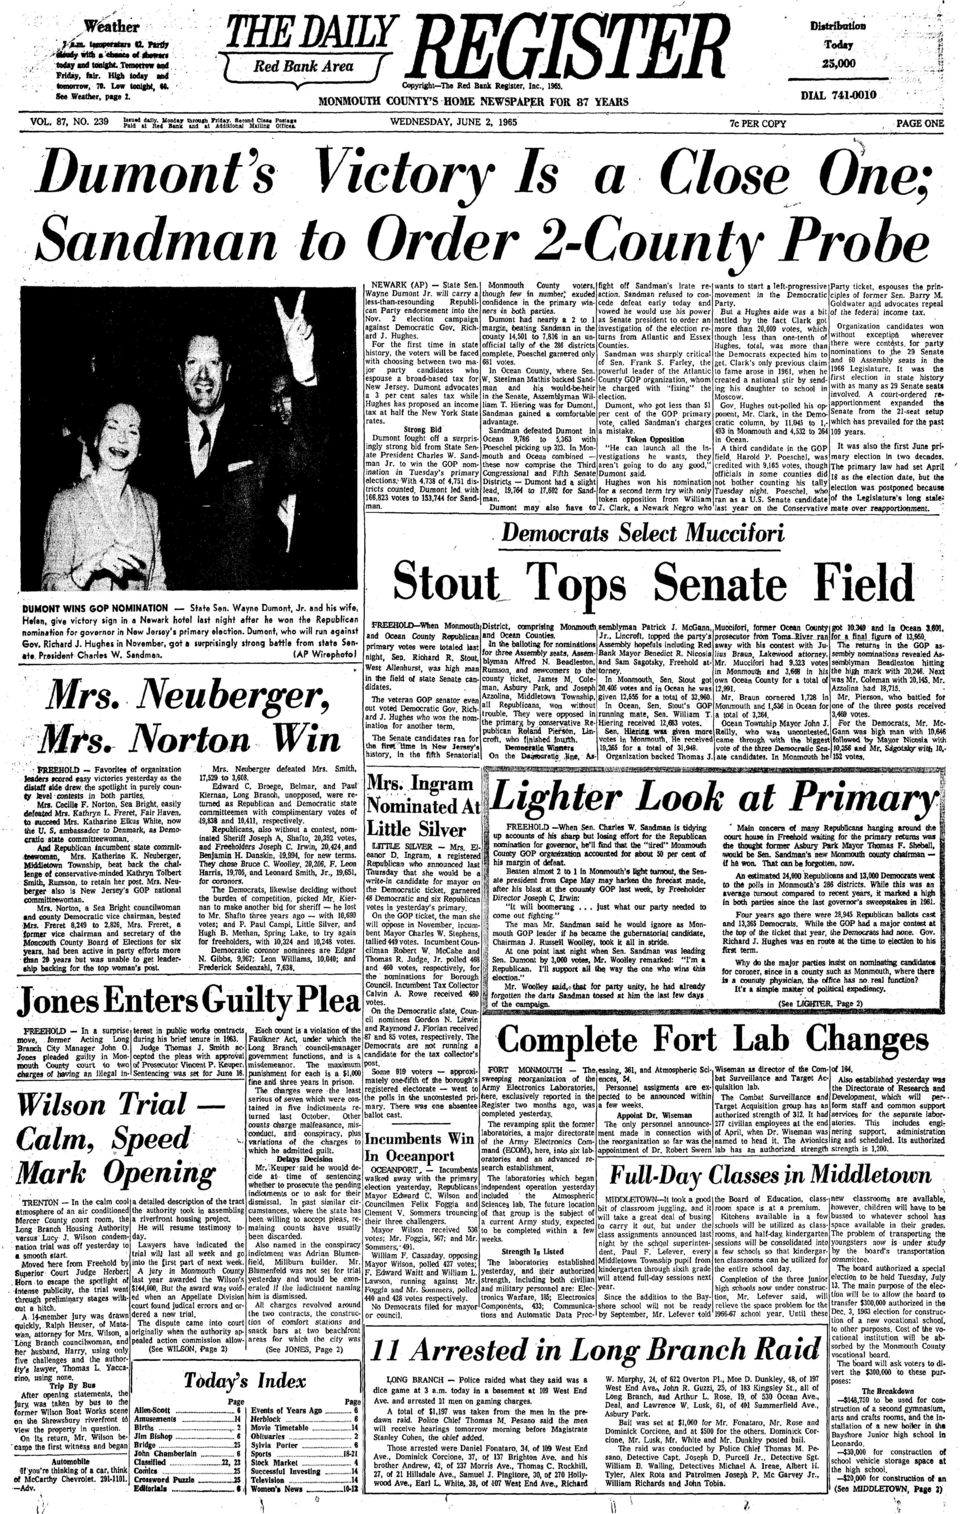 Second Clui Pom»««Paid at Red Bank and at Additional MUUra Oltlcu, WEDNESDAY, JUNE 2, 1965 7c PER COPY PAGE ONE DumonVs Victory Is a Close One; Sandman to Order 2-County Probe DUMONT WINS GOP